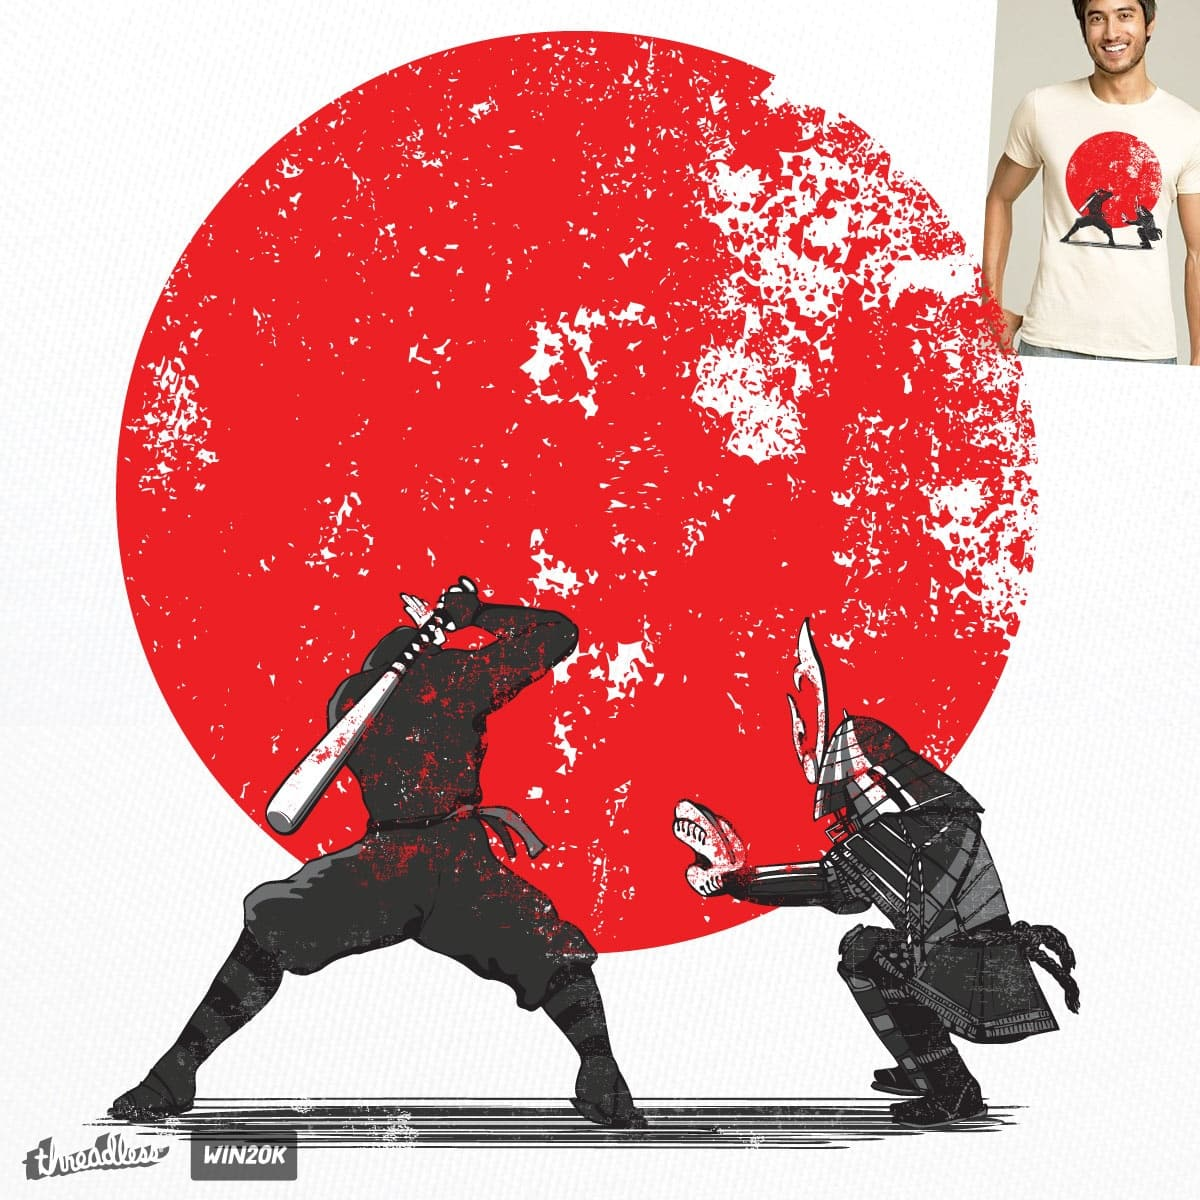 Ninja vs Samurai by Jemae on Threadless